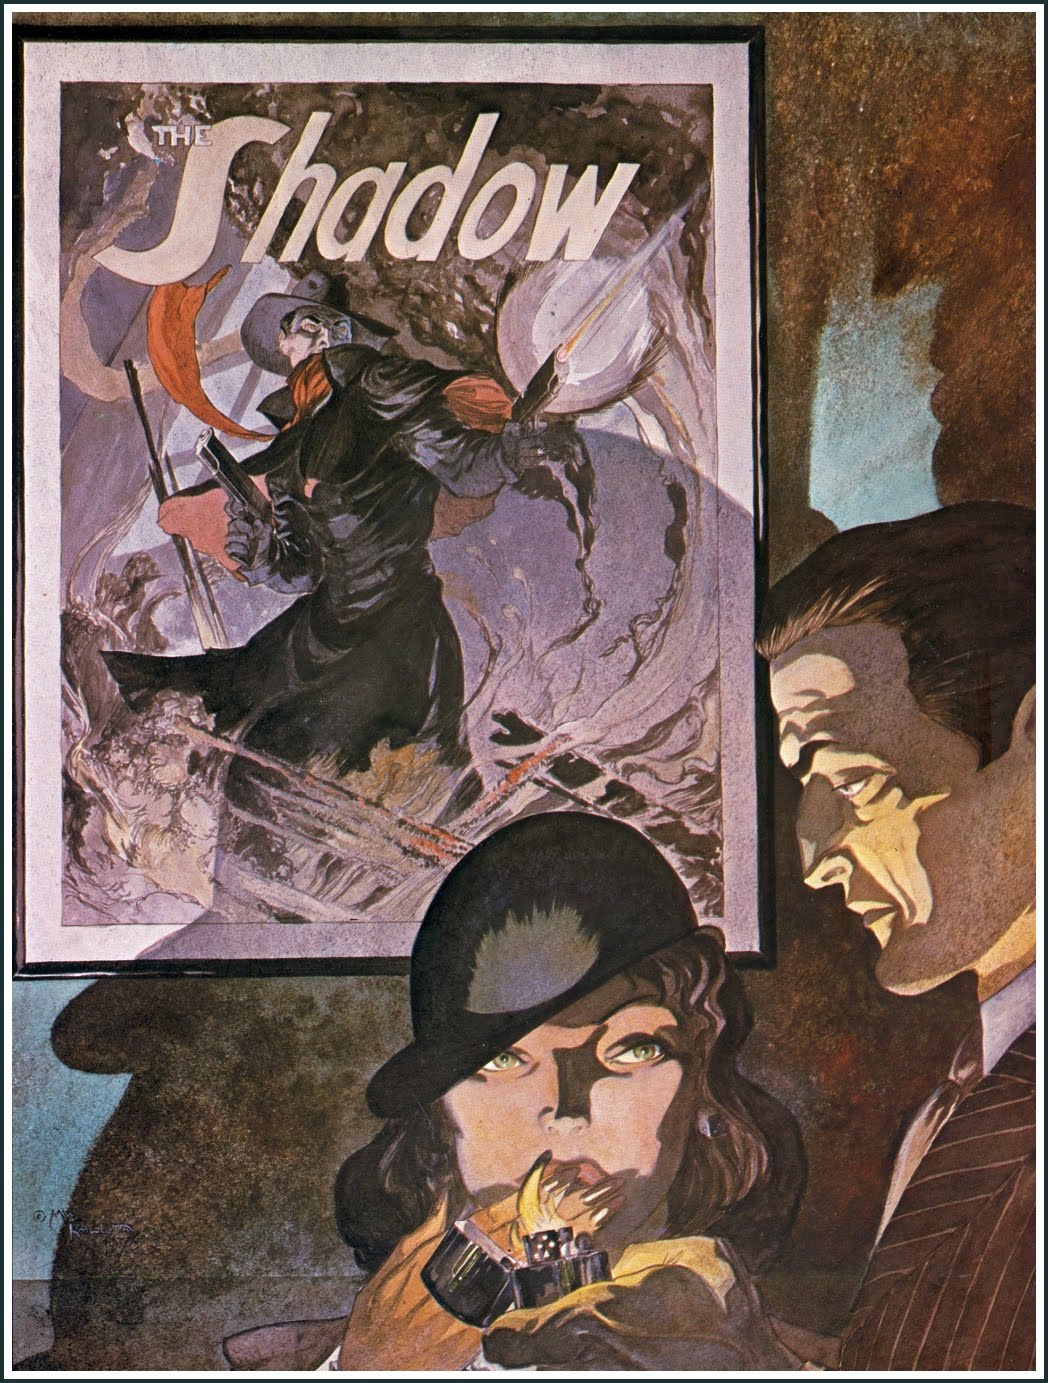 Michael Wm. Kaluta – The Shadow